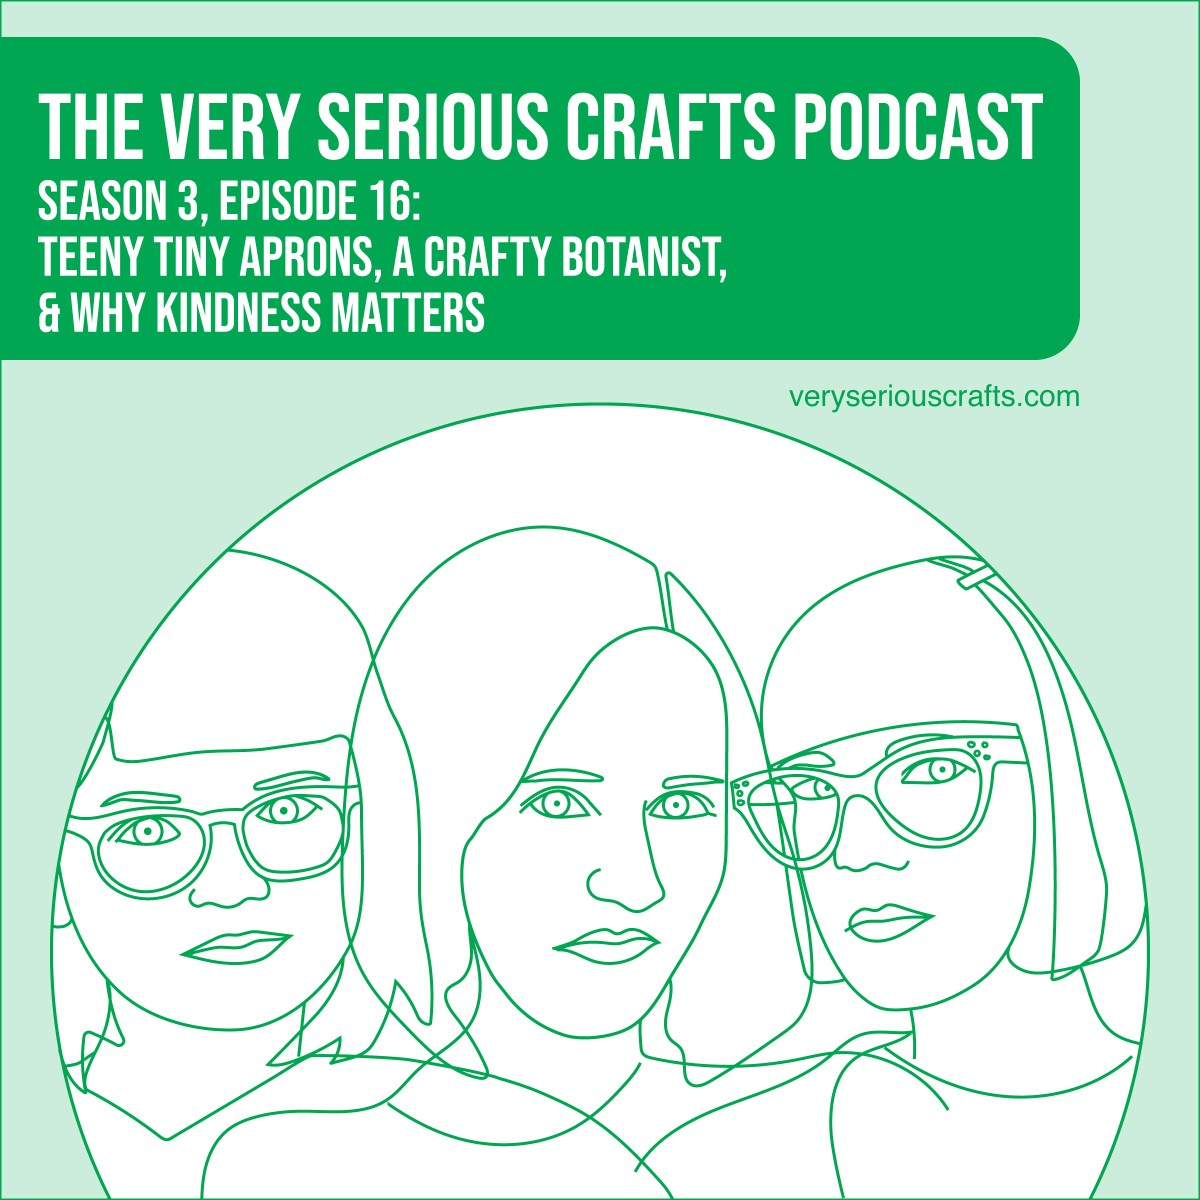 The Very Serious Crafts Podcast, Season 3: Episode 16 – Teeny Tiny Aprons, a Crafty Botanist, and Why Kindness Matters